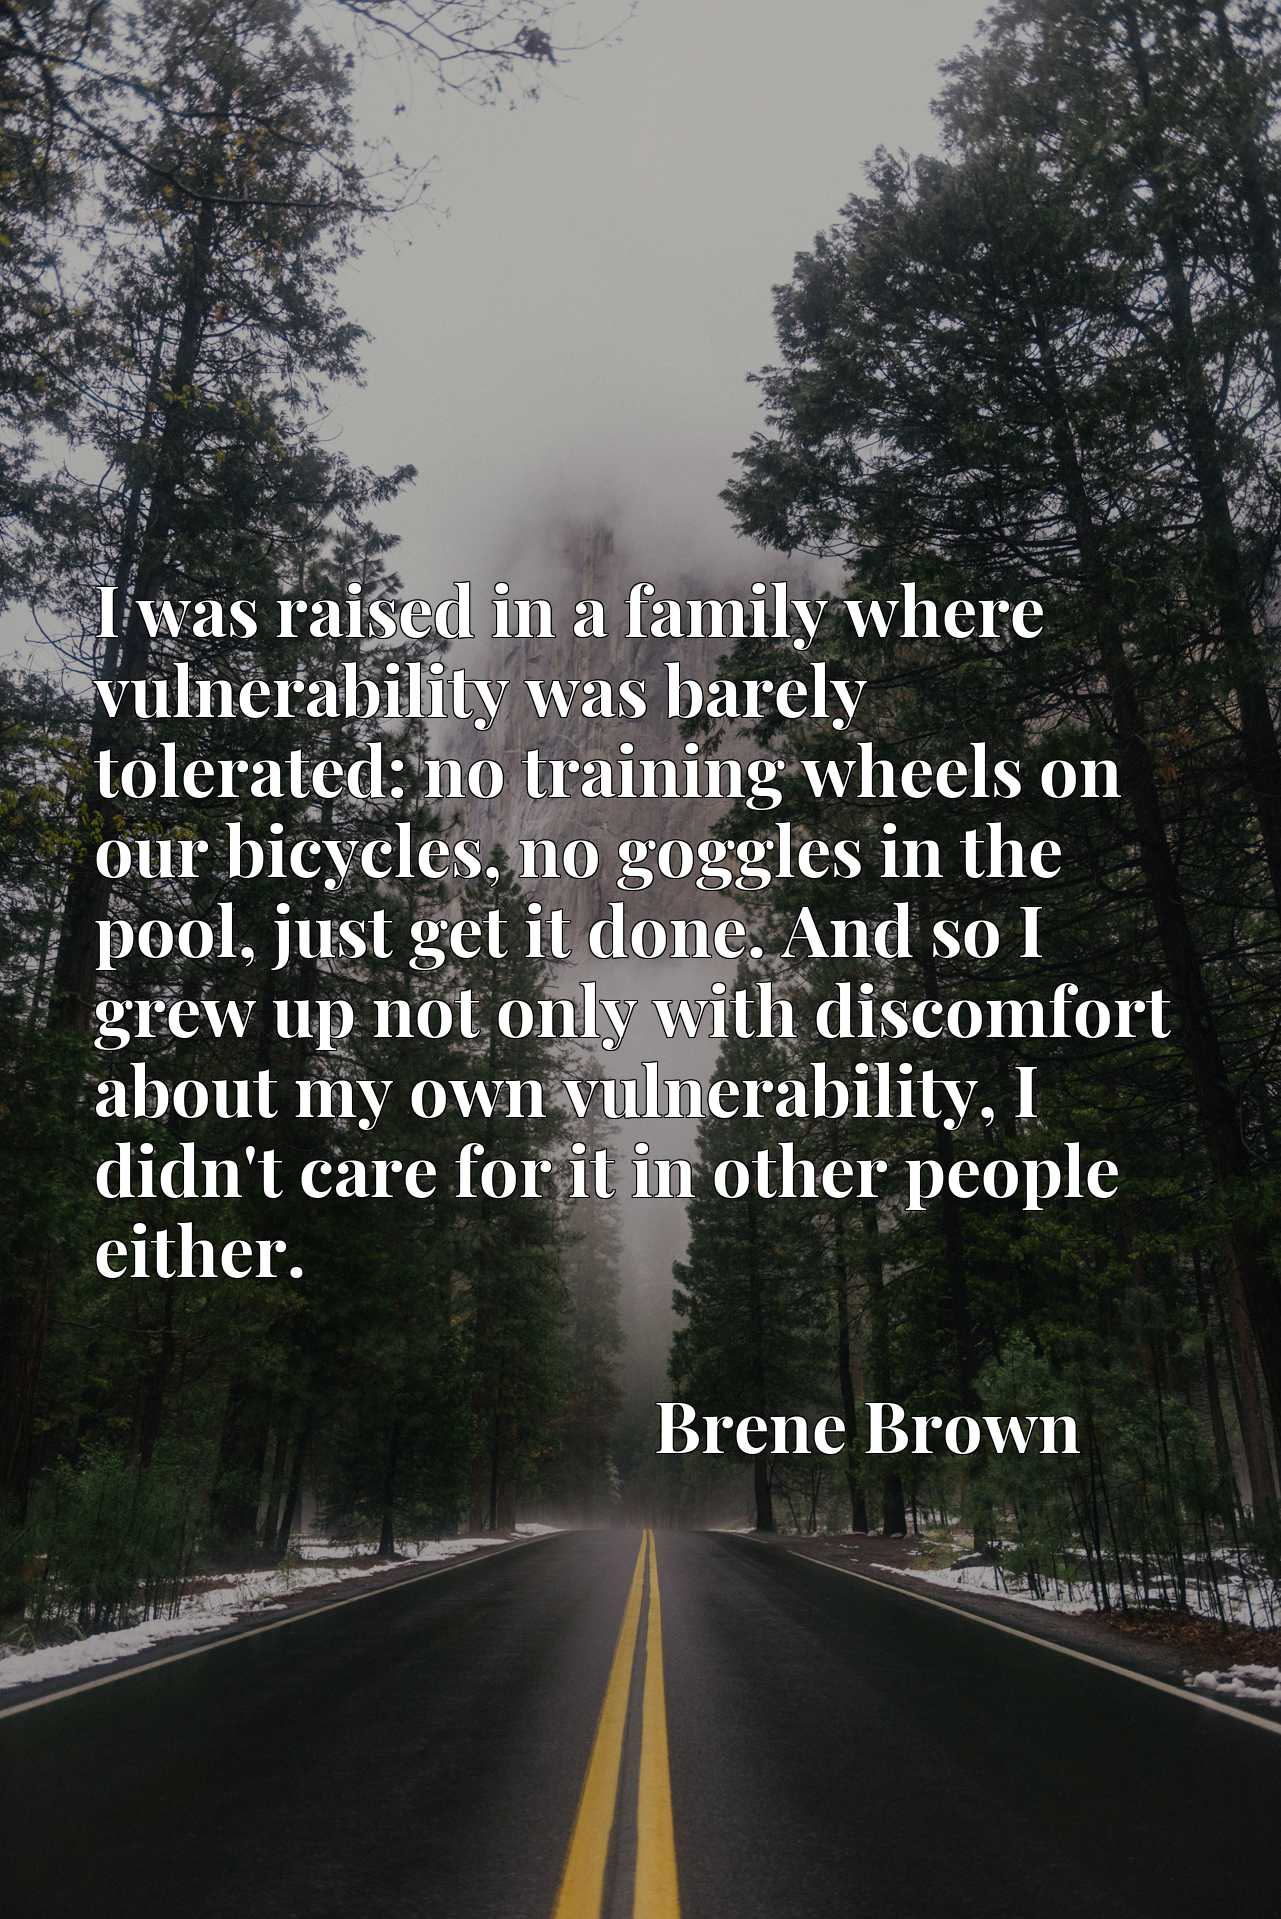 I was raised in a family where vulnerability was barely tolerated: no training wheels on our bicycles, no goggles in the pool, just get it done. And so I grew up not only with discomfort about my own vulnerability, I didn't care for it in other people either.